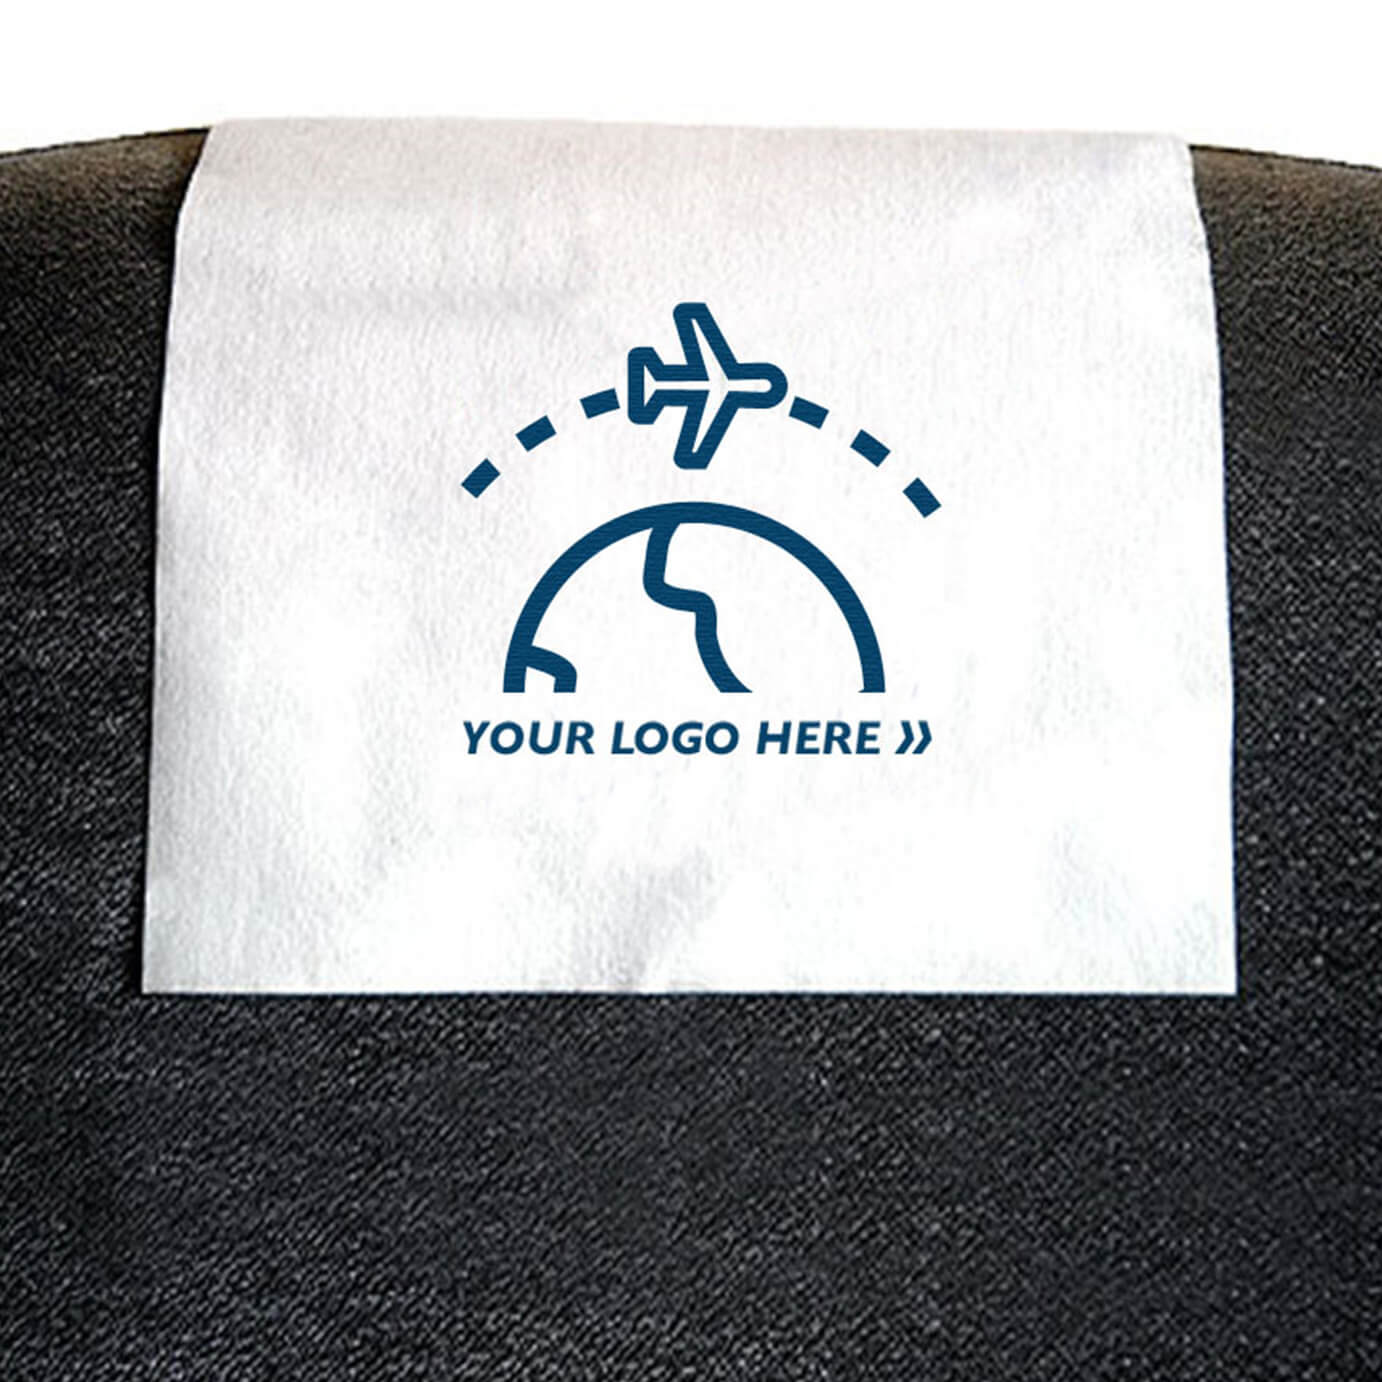 Headrest covers for airlines